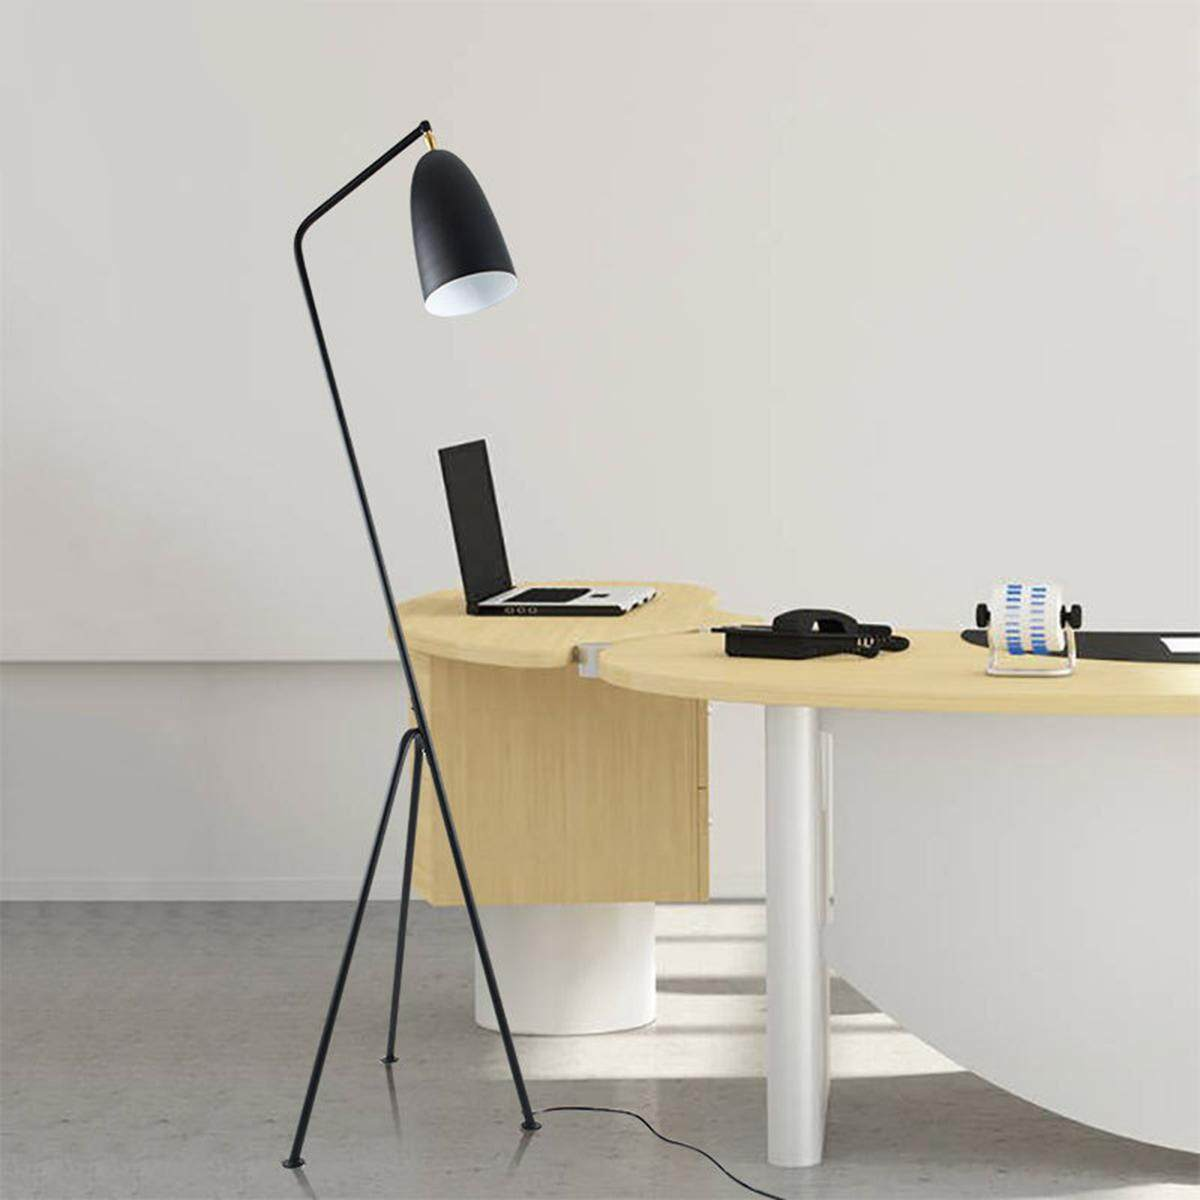 Black Modern Triangle Floor Lamp Light Metal Office Studio Home By Freebang.